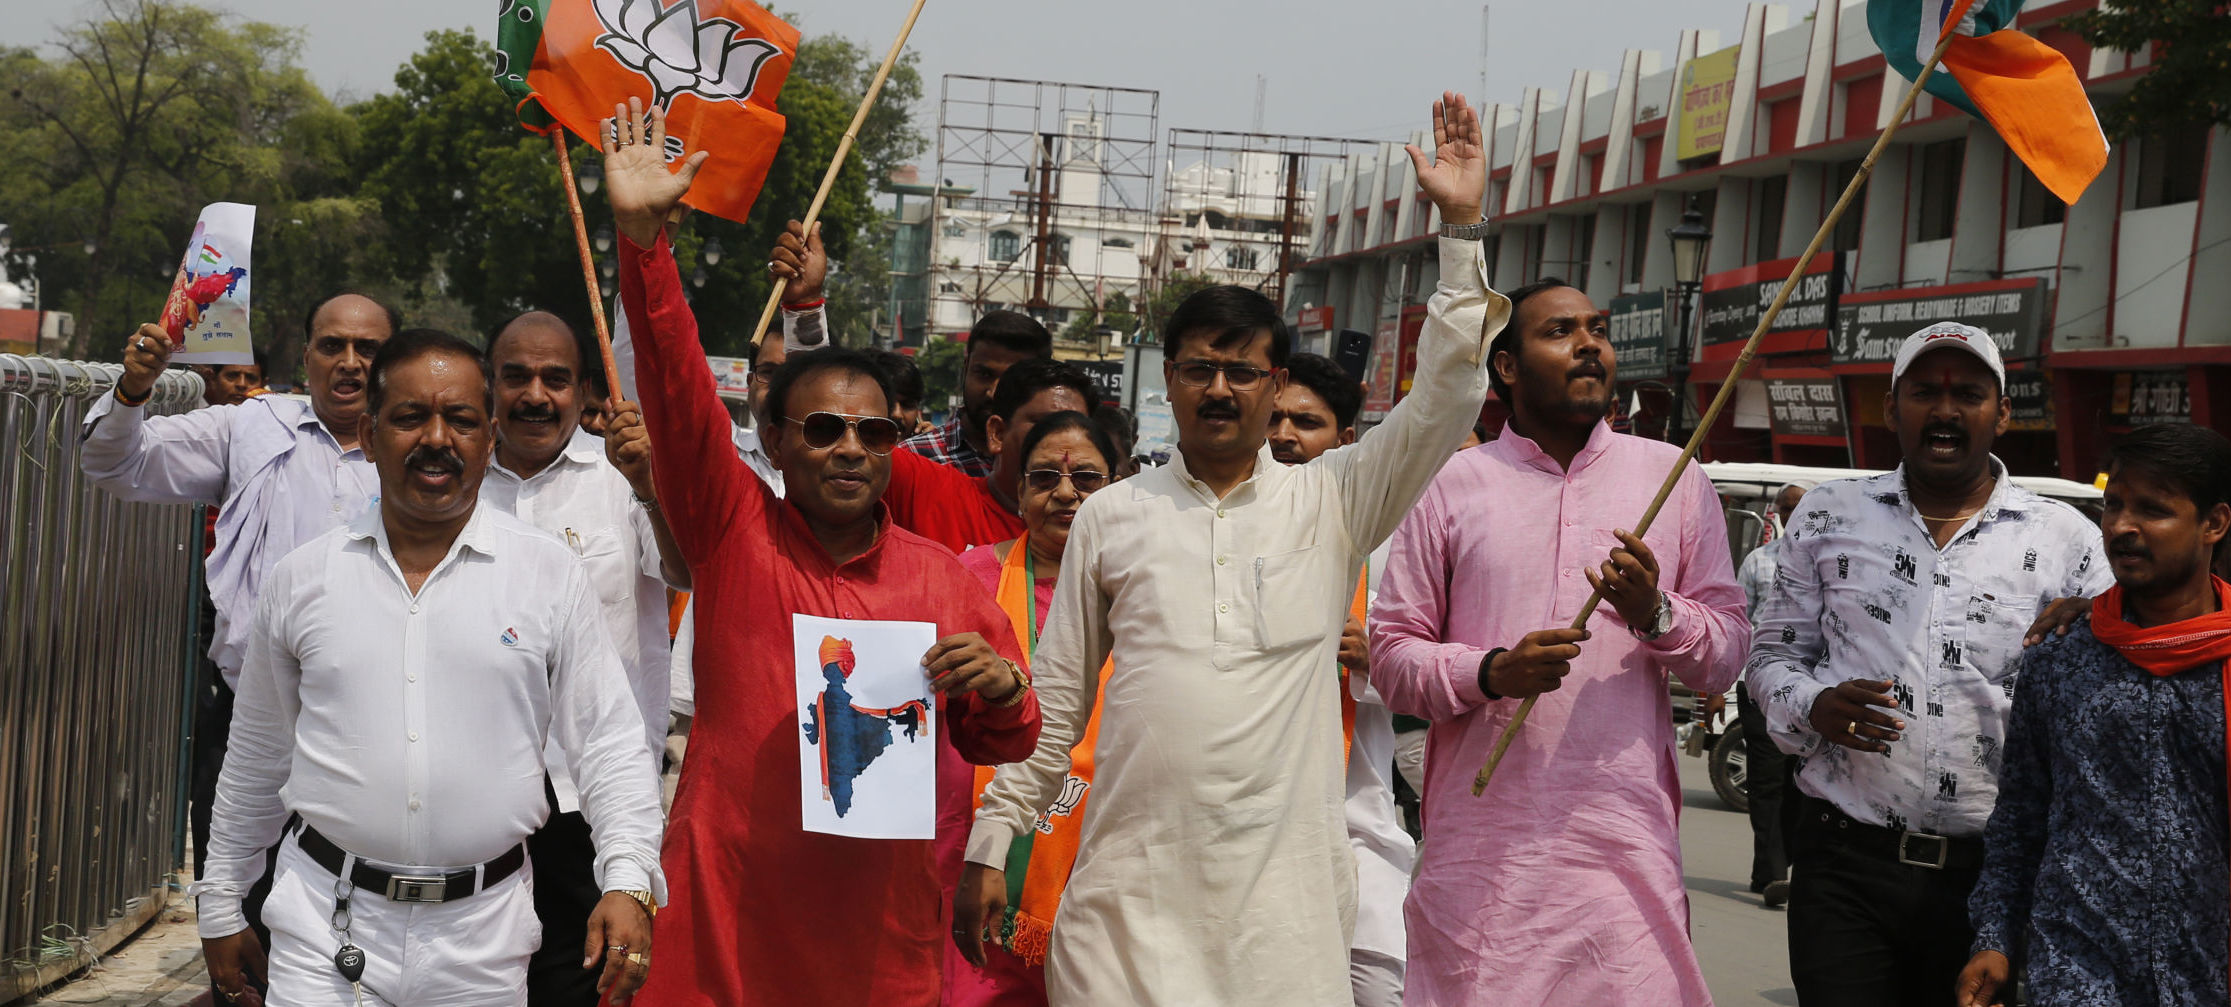 India's ruling Bharatiya Janata Party (BJP) supporters celebrate government revoking disputed Kashmir's special status in Prayagraj, India, Monday, Aug. 5, 2019